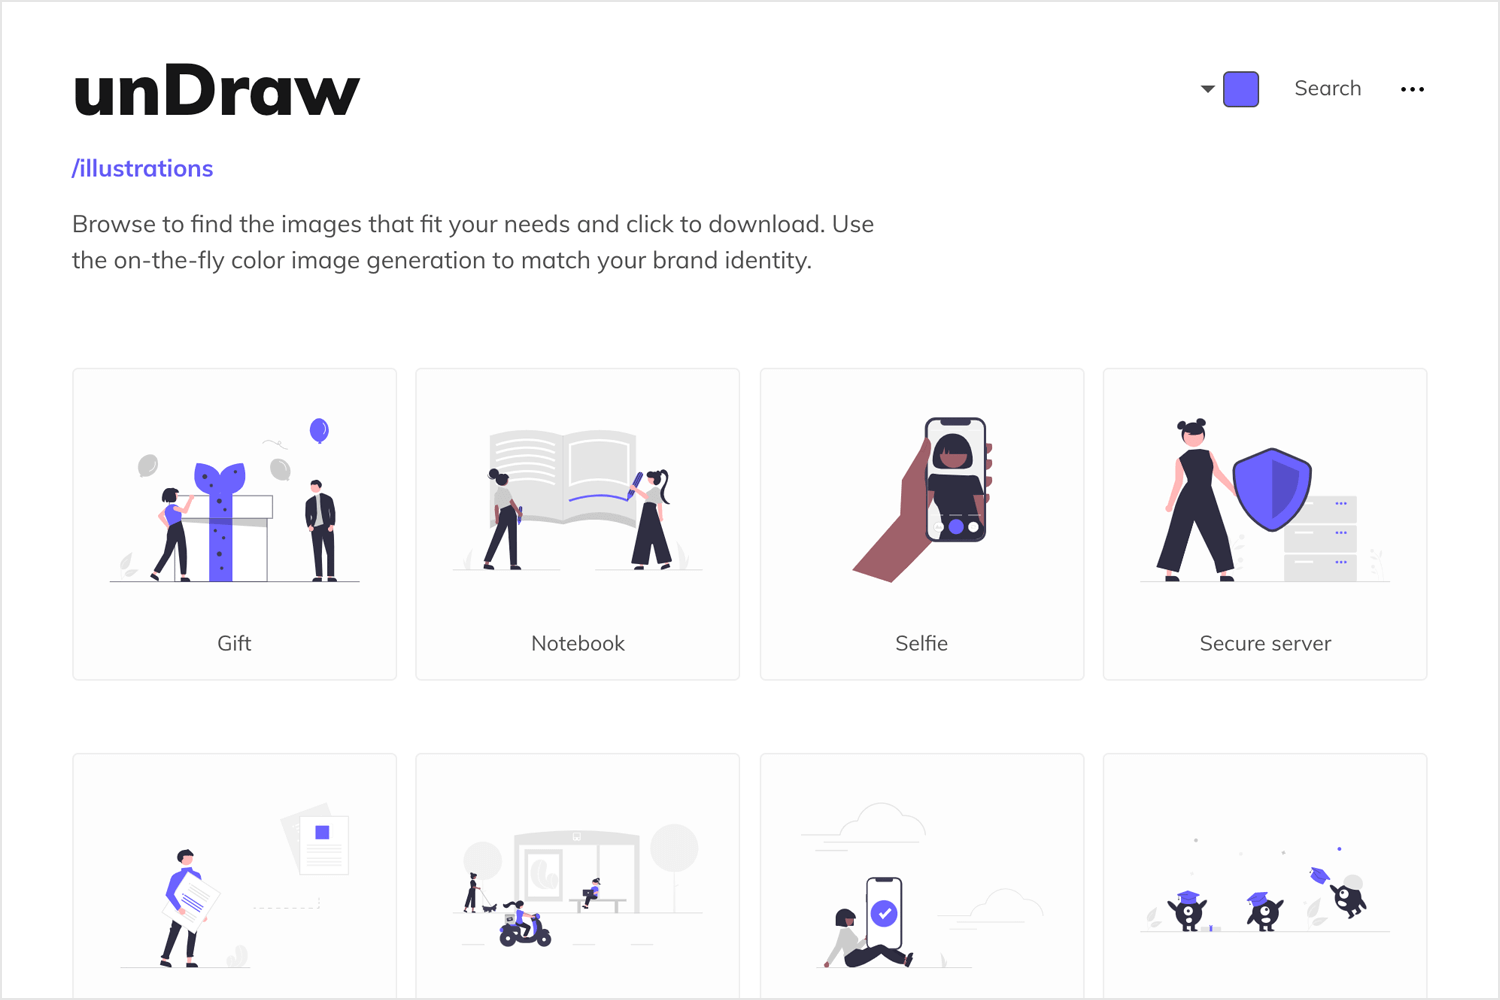 Free vector images - unDraw homepage